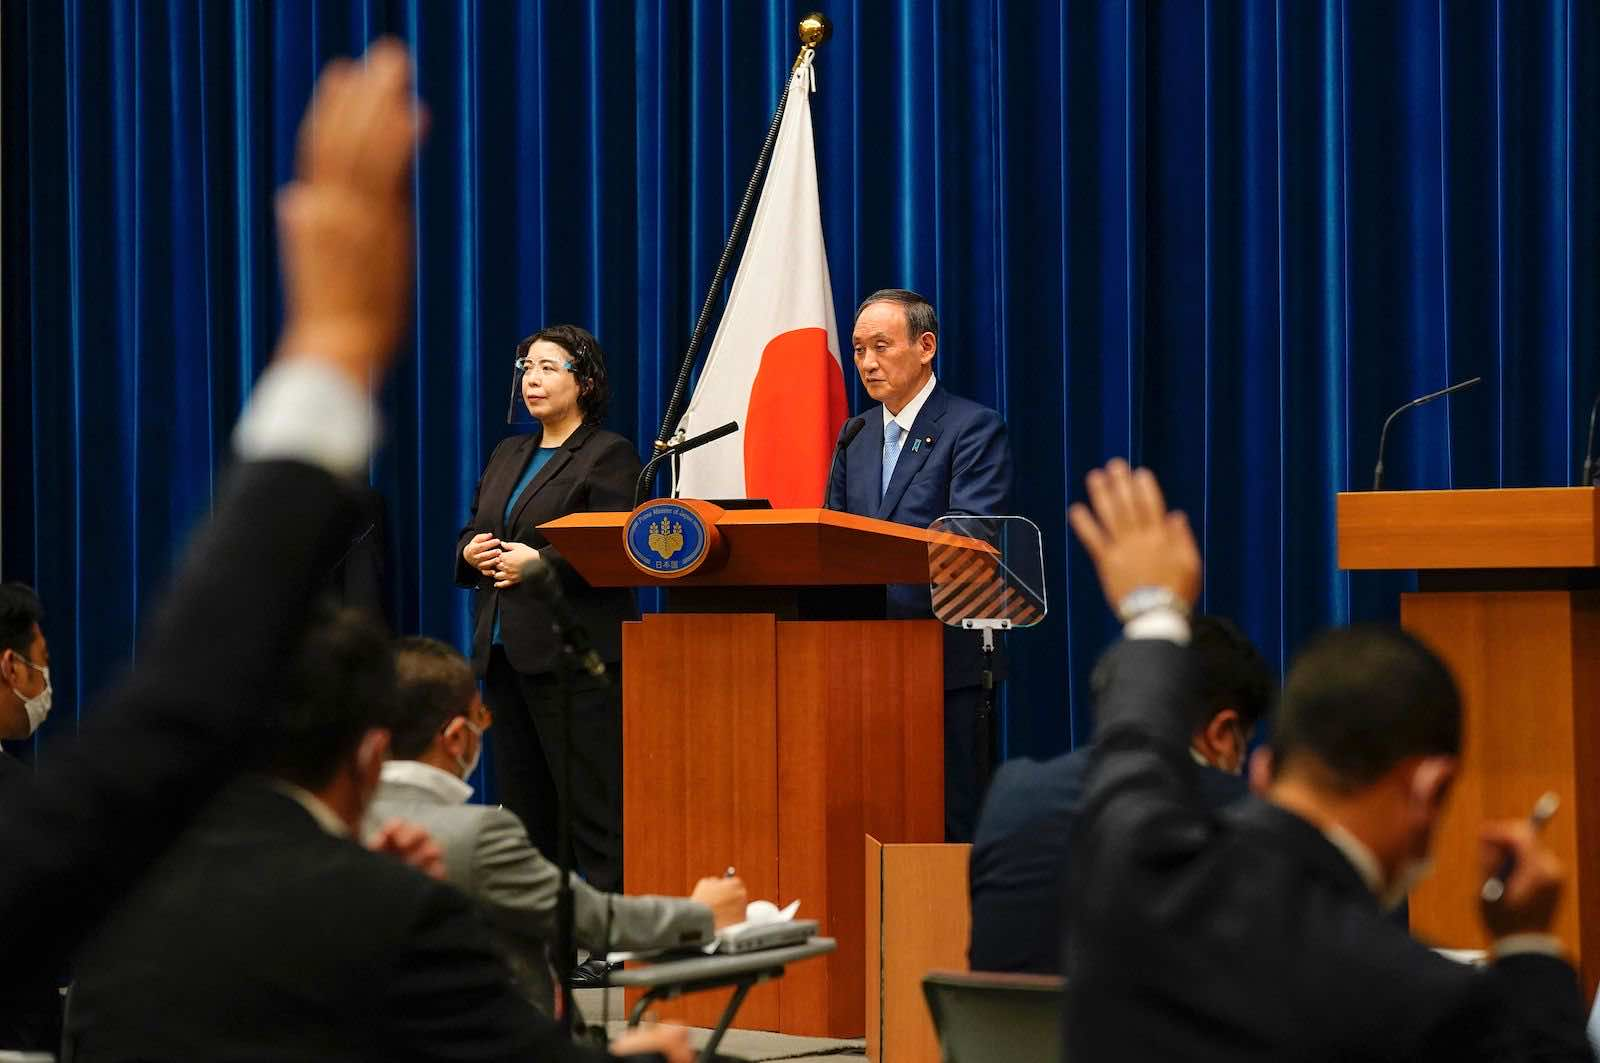 Japan's Prime Minister Yoshihide Suga during a news conference at his official residence in Tokyo on 17 August (Kimimasa Mayama/AFP via Getty Images)